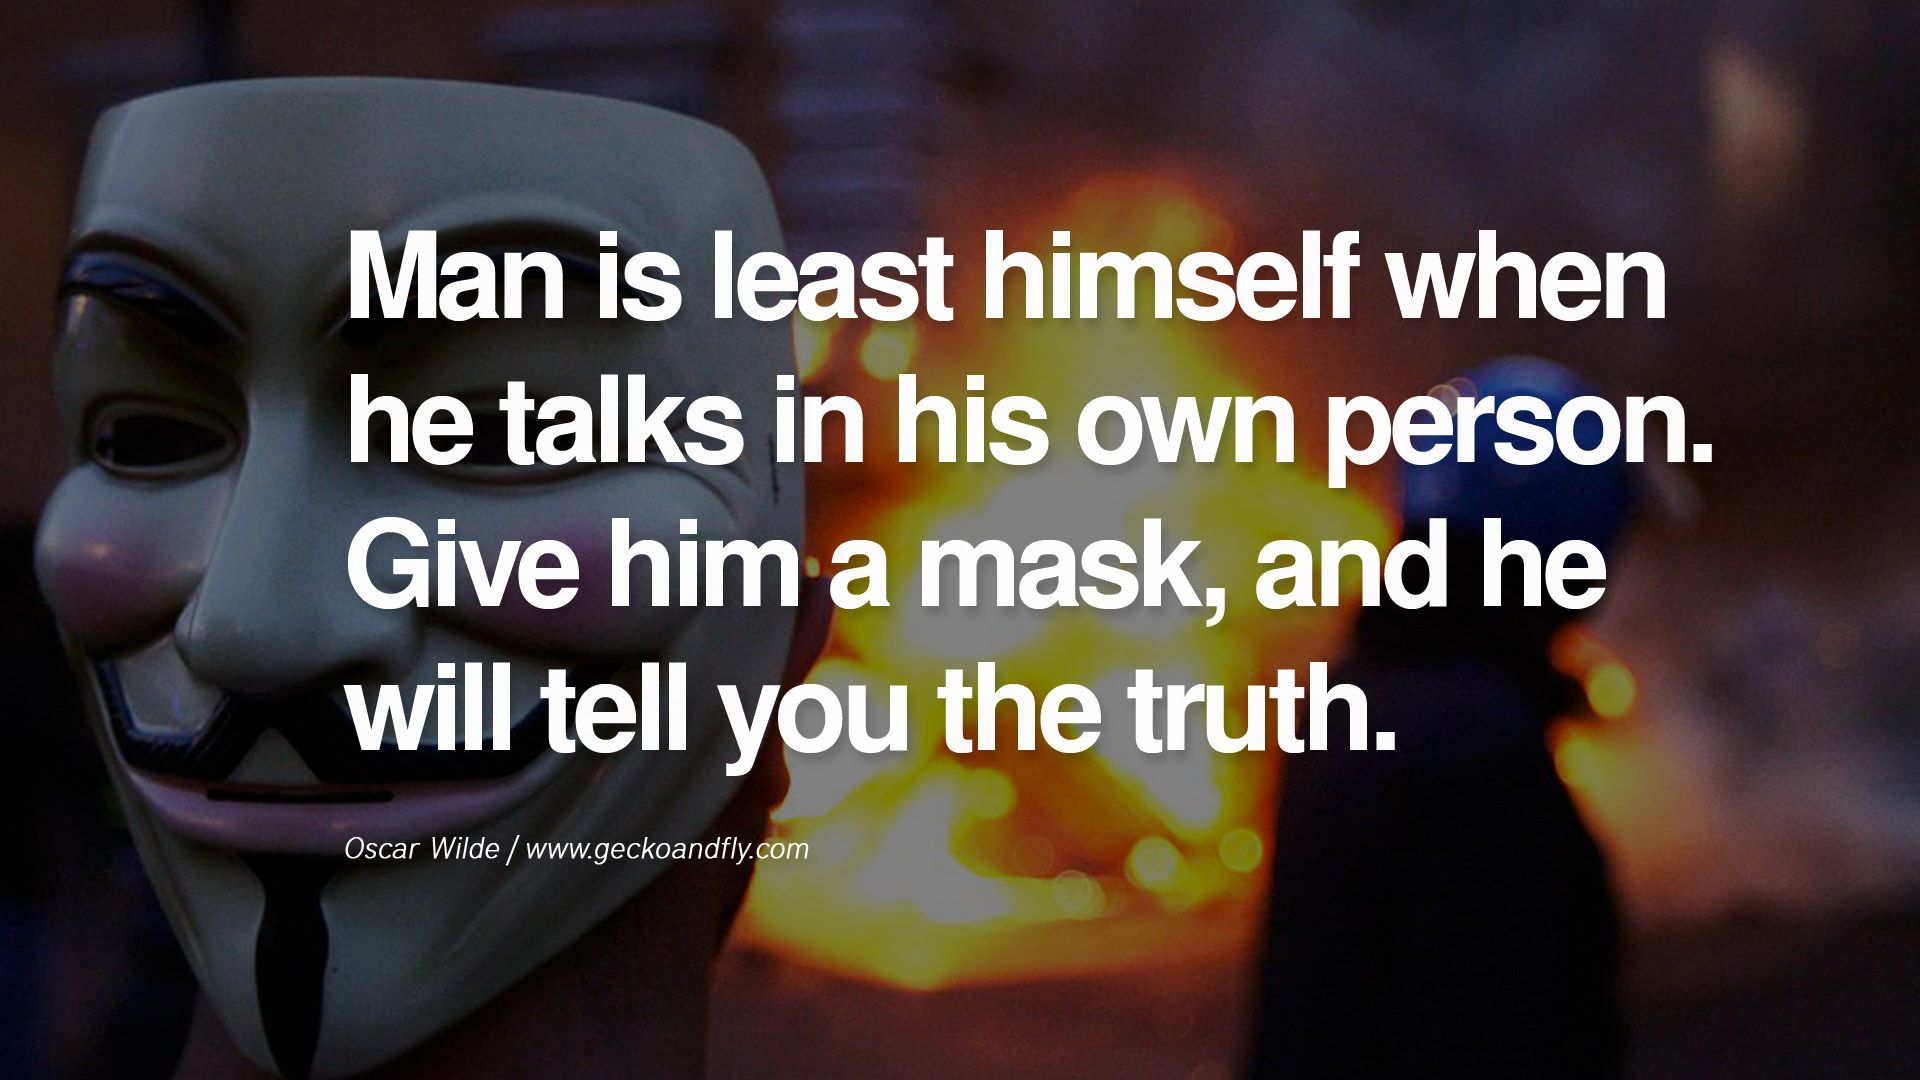 24 Quotes On Wearing A Mask Lying And Hiding Oneself Quotes